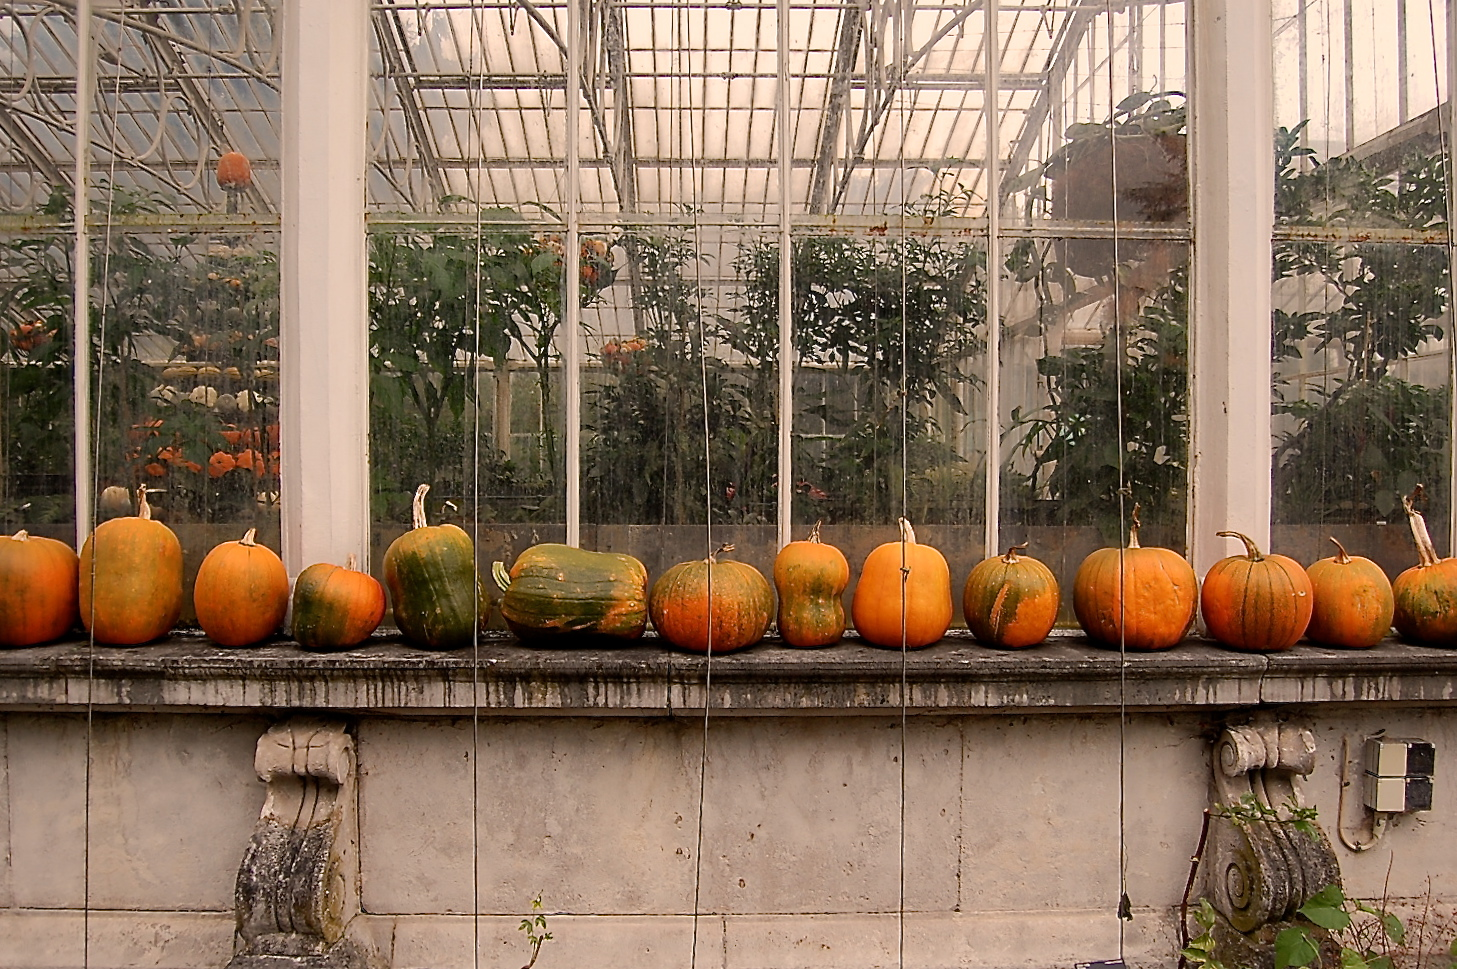 Pumpkins in a row - no Thanksgiving here :(